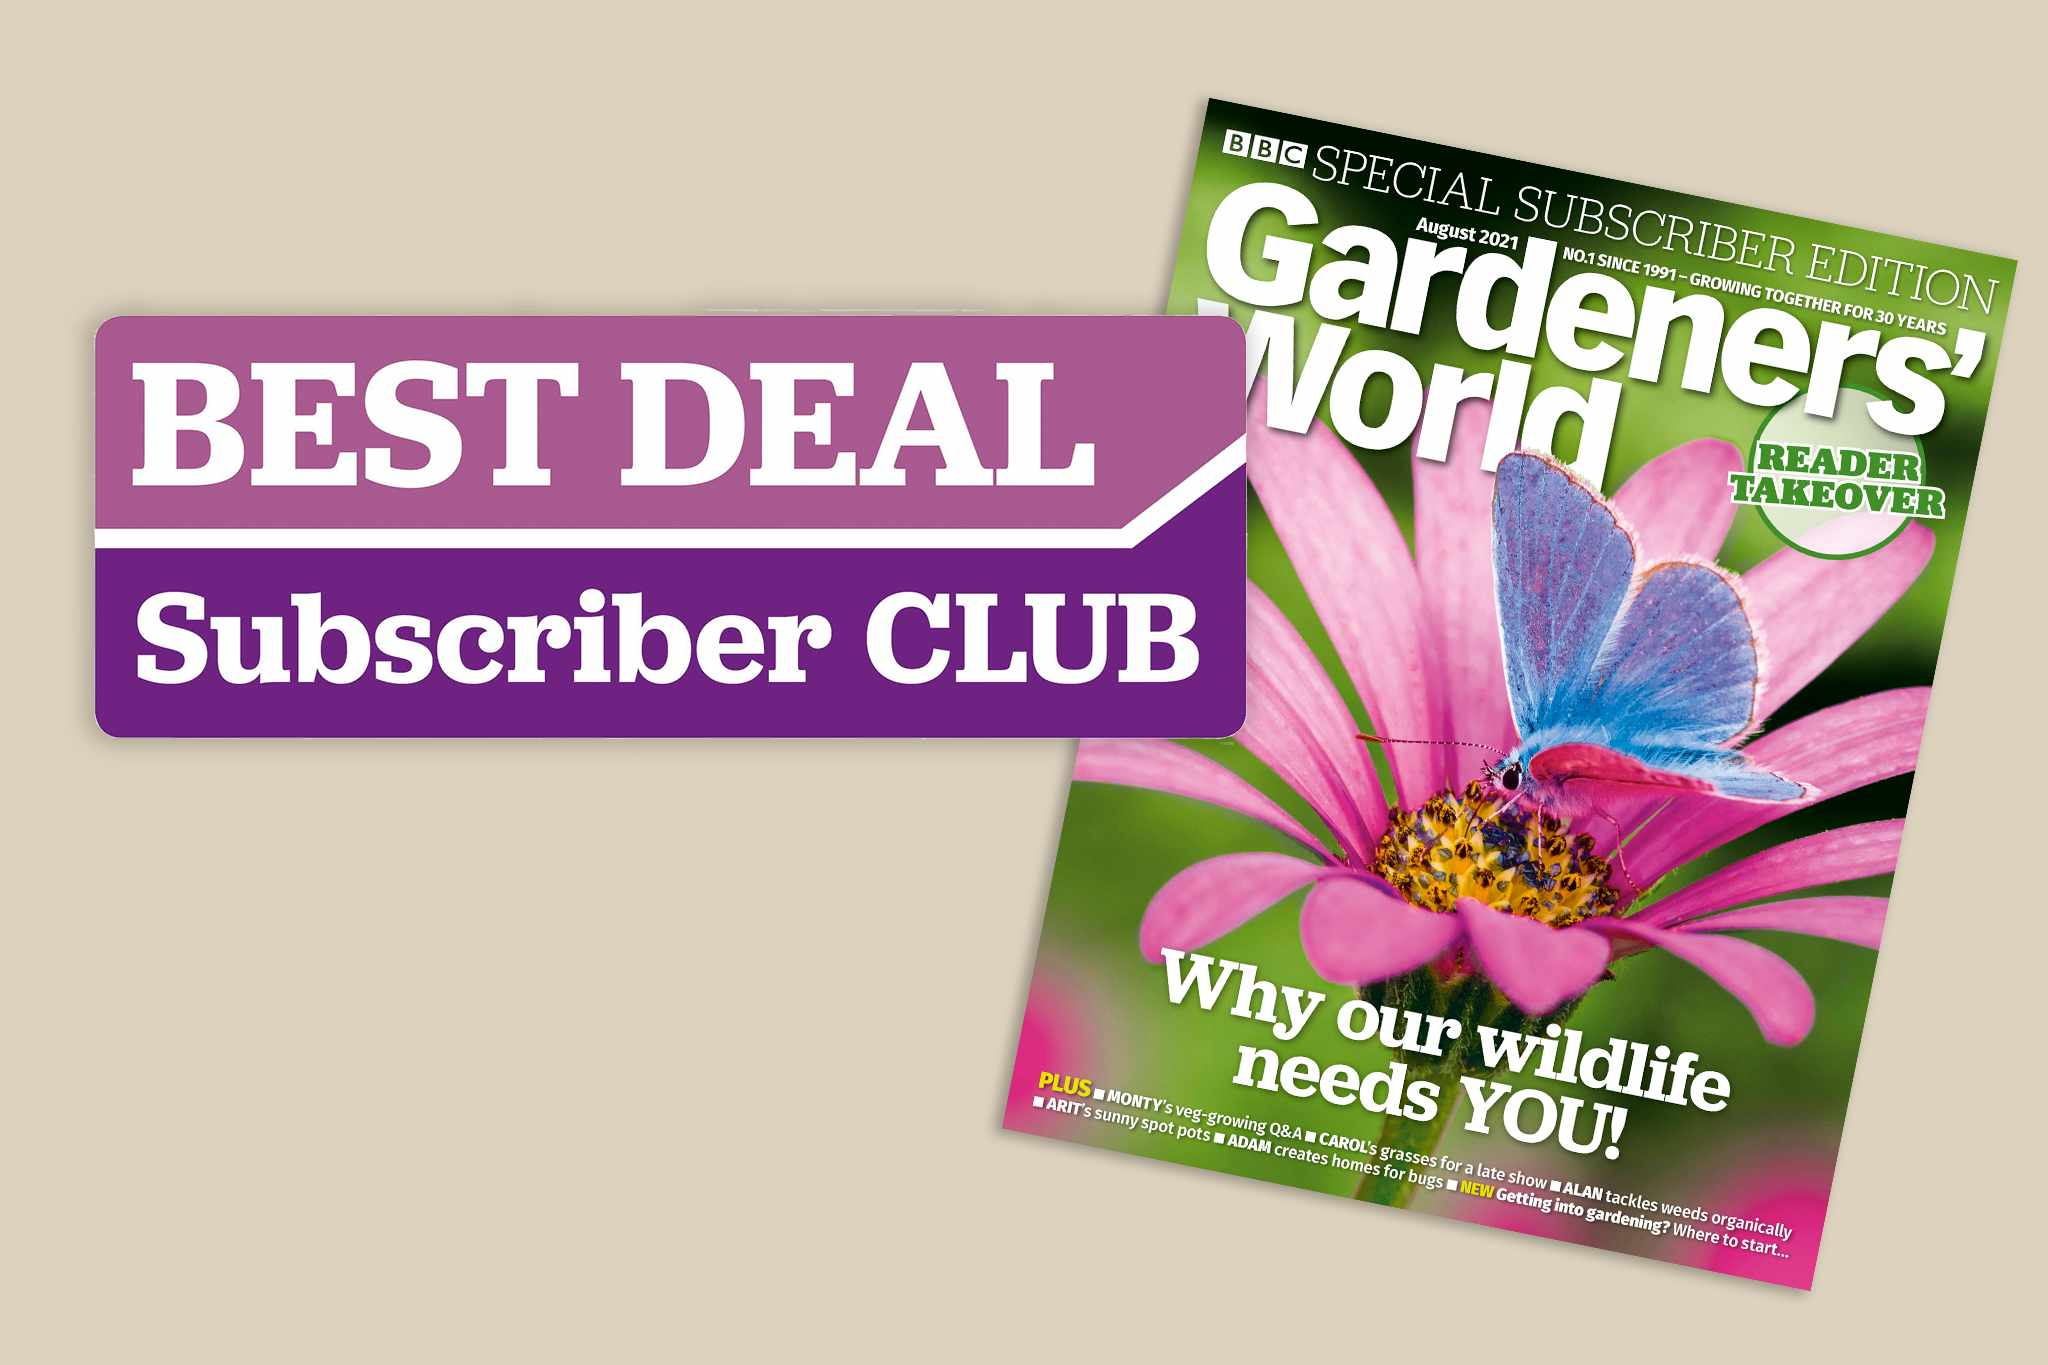 New August issue - subscribers save 10% with our selected partners